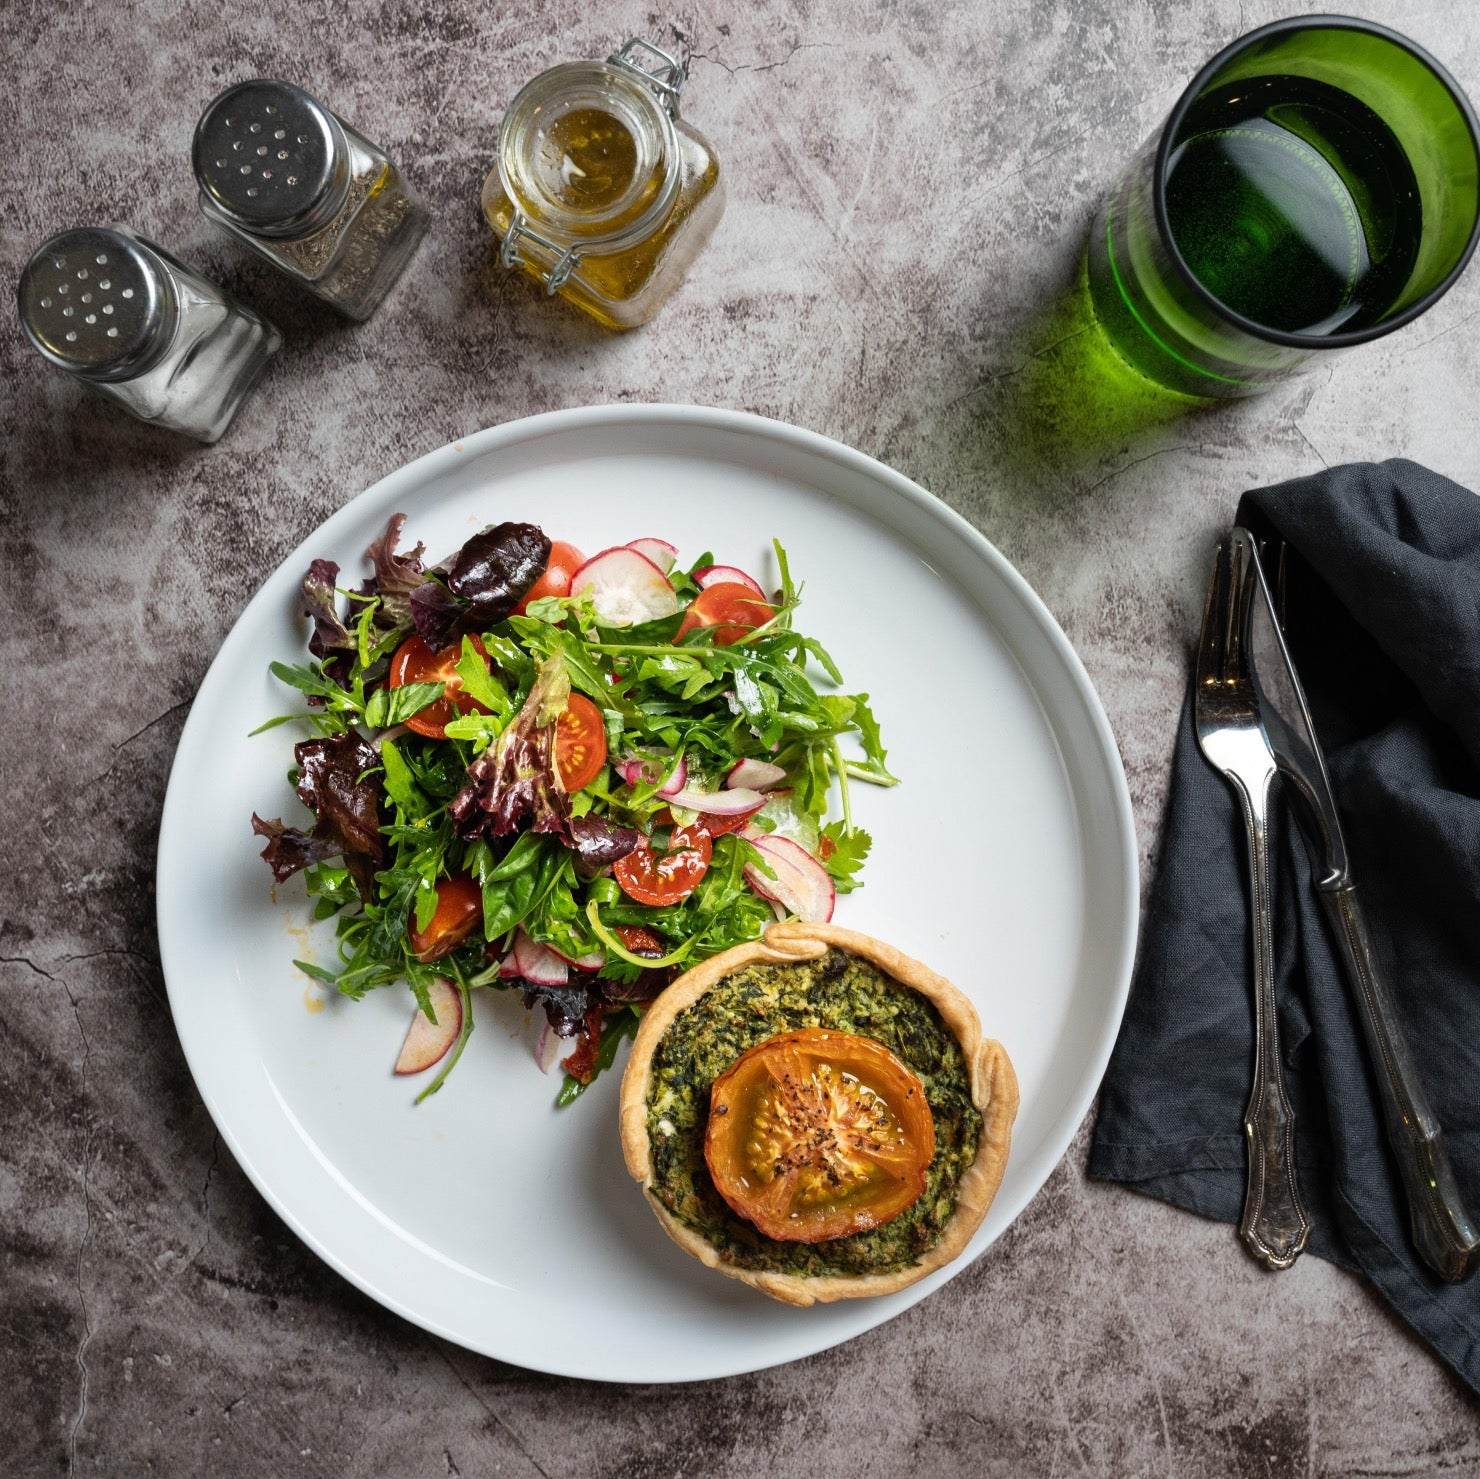 Spinach & Tomato Quiche on a plate with a glass of water